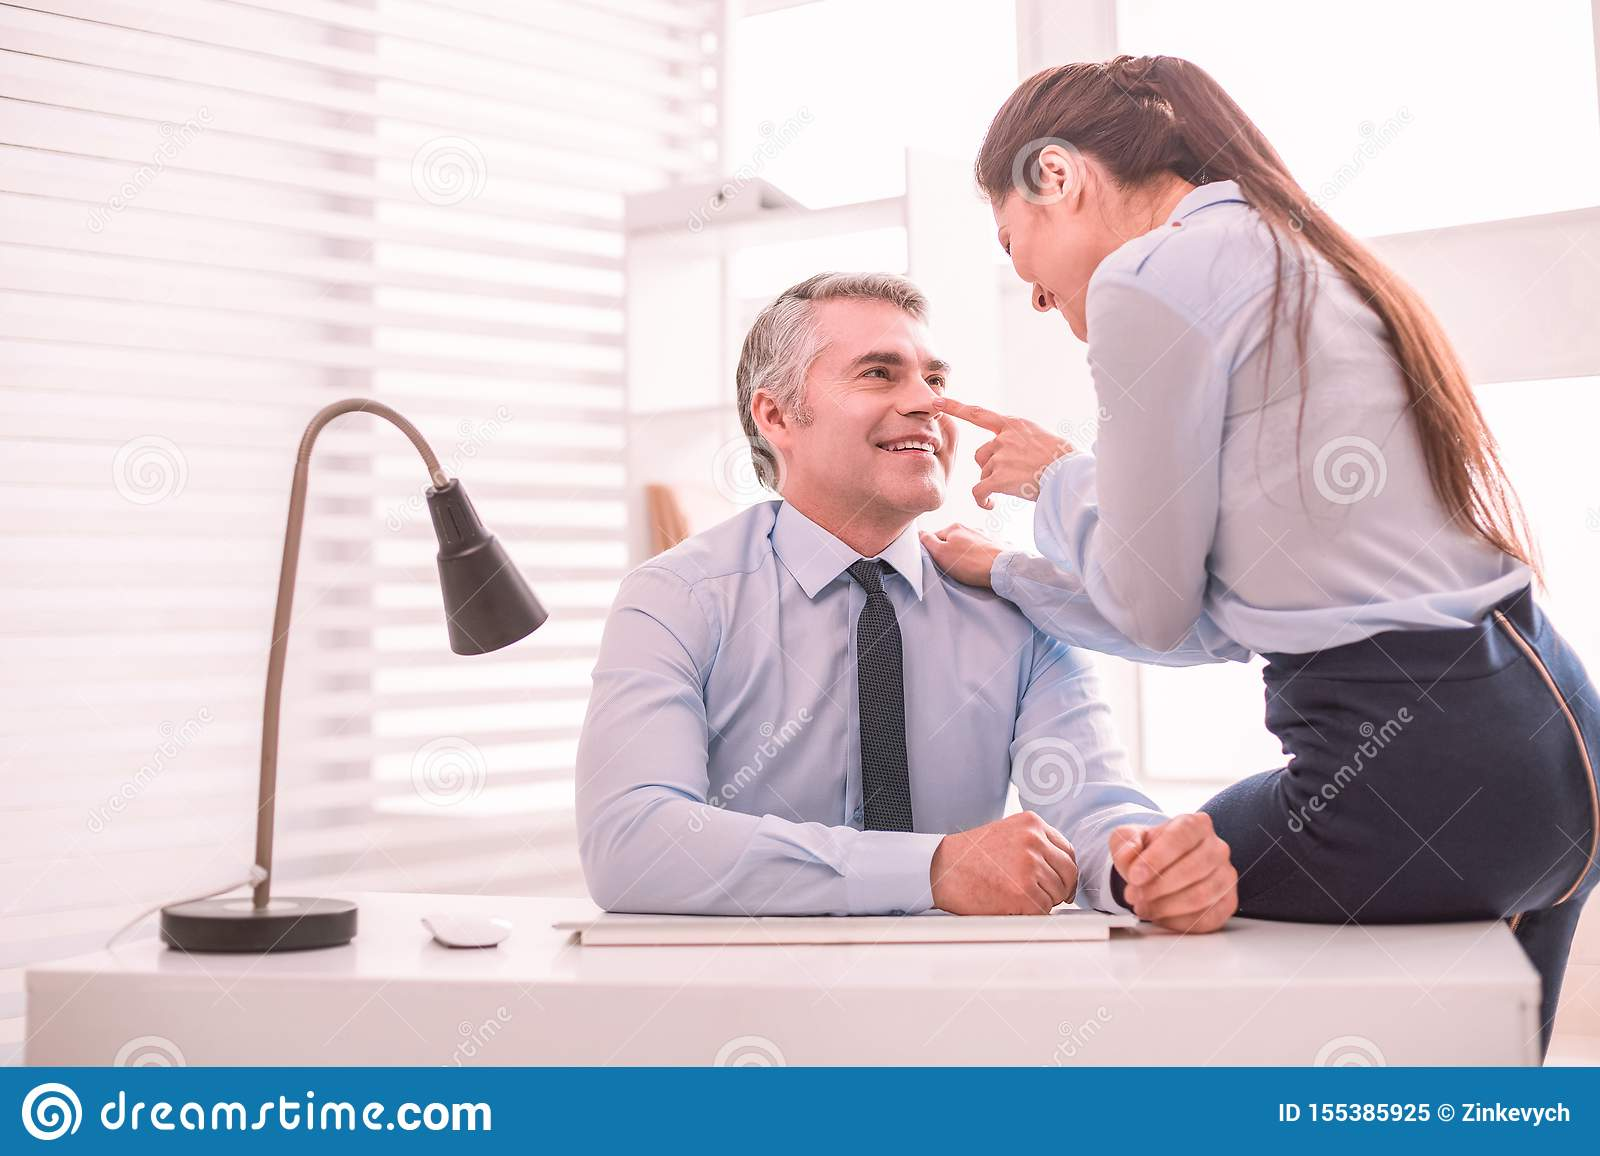 Personal Assistant And Her Boss Flirting At The Workplace Stock Image - Image of dignity, career